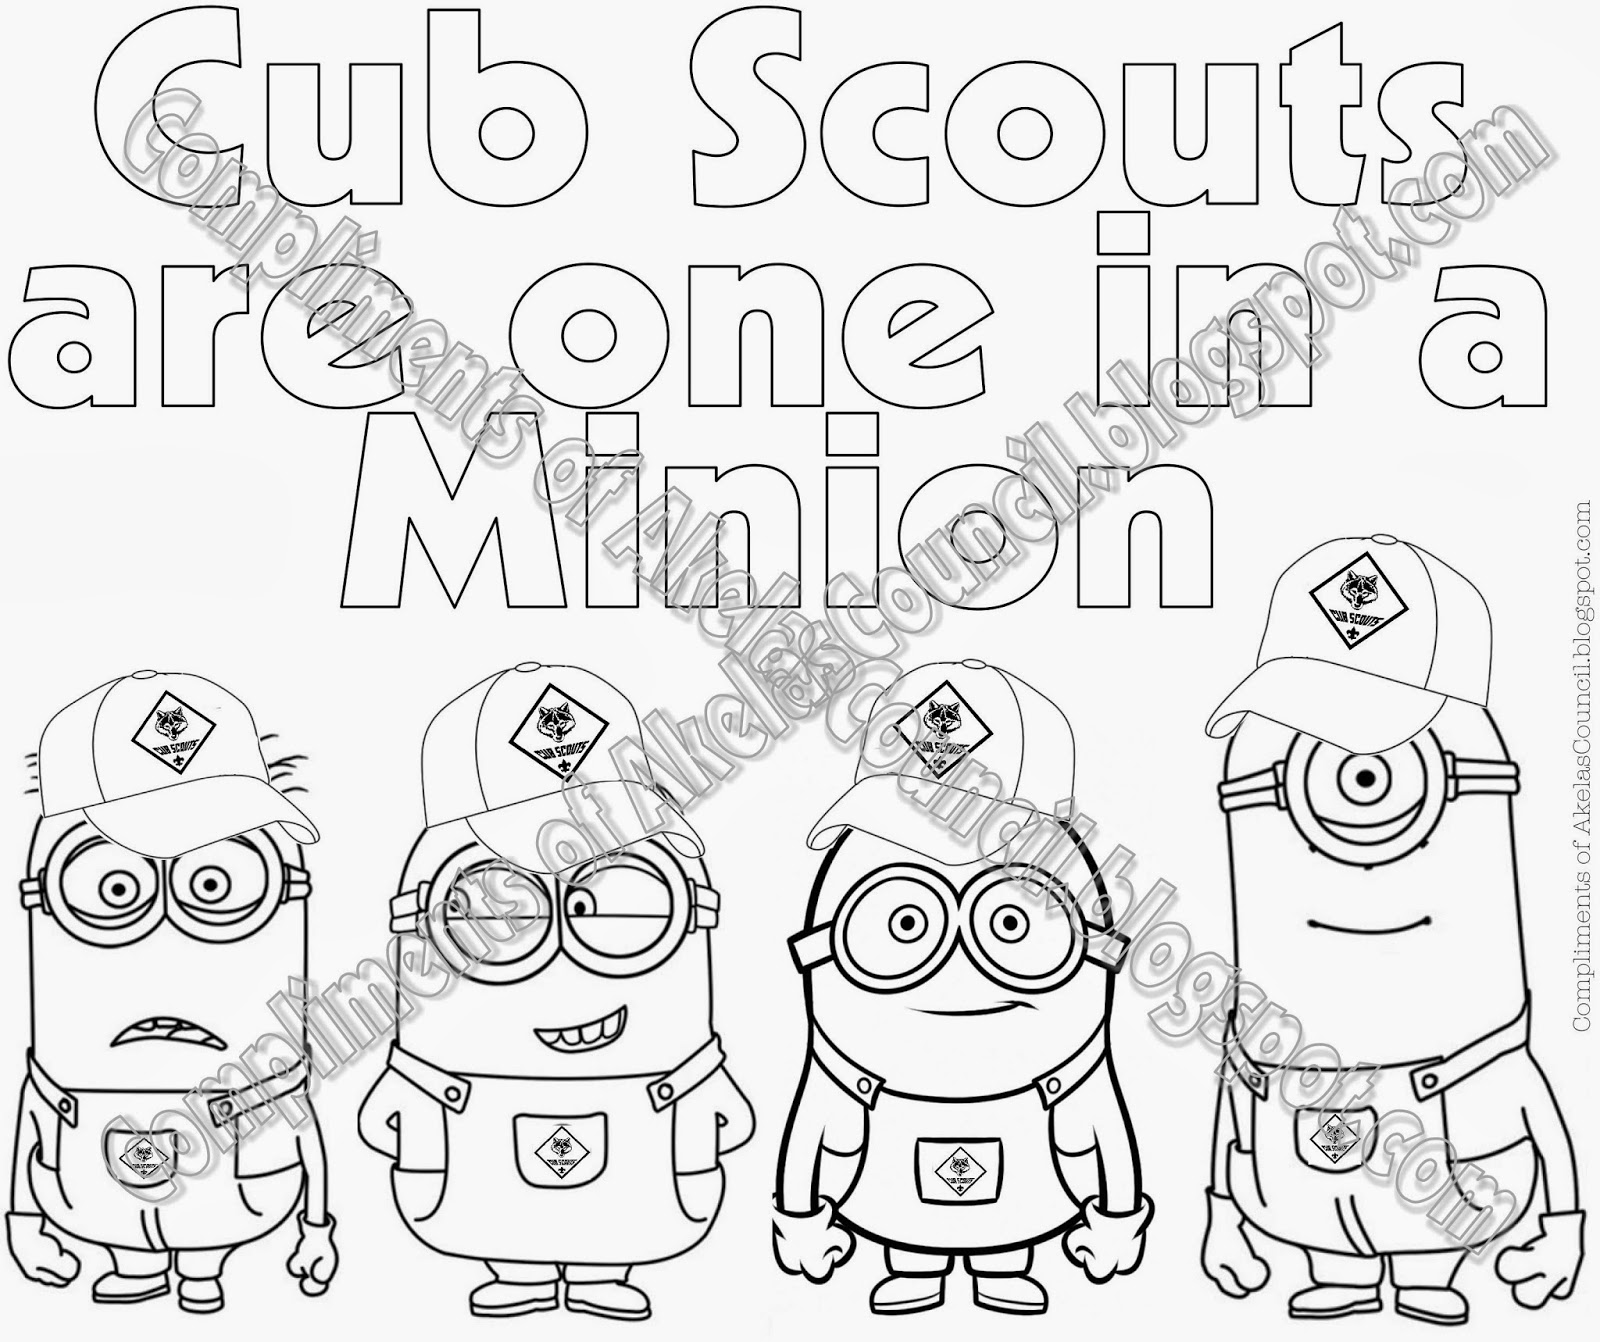 Akela s Council Cub Scout Leader Training Cub Scout Minions